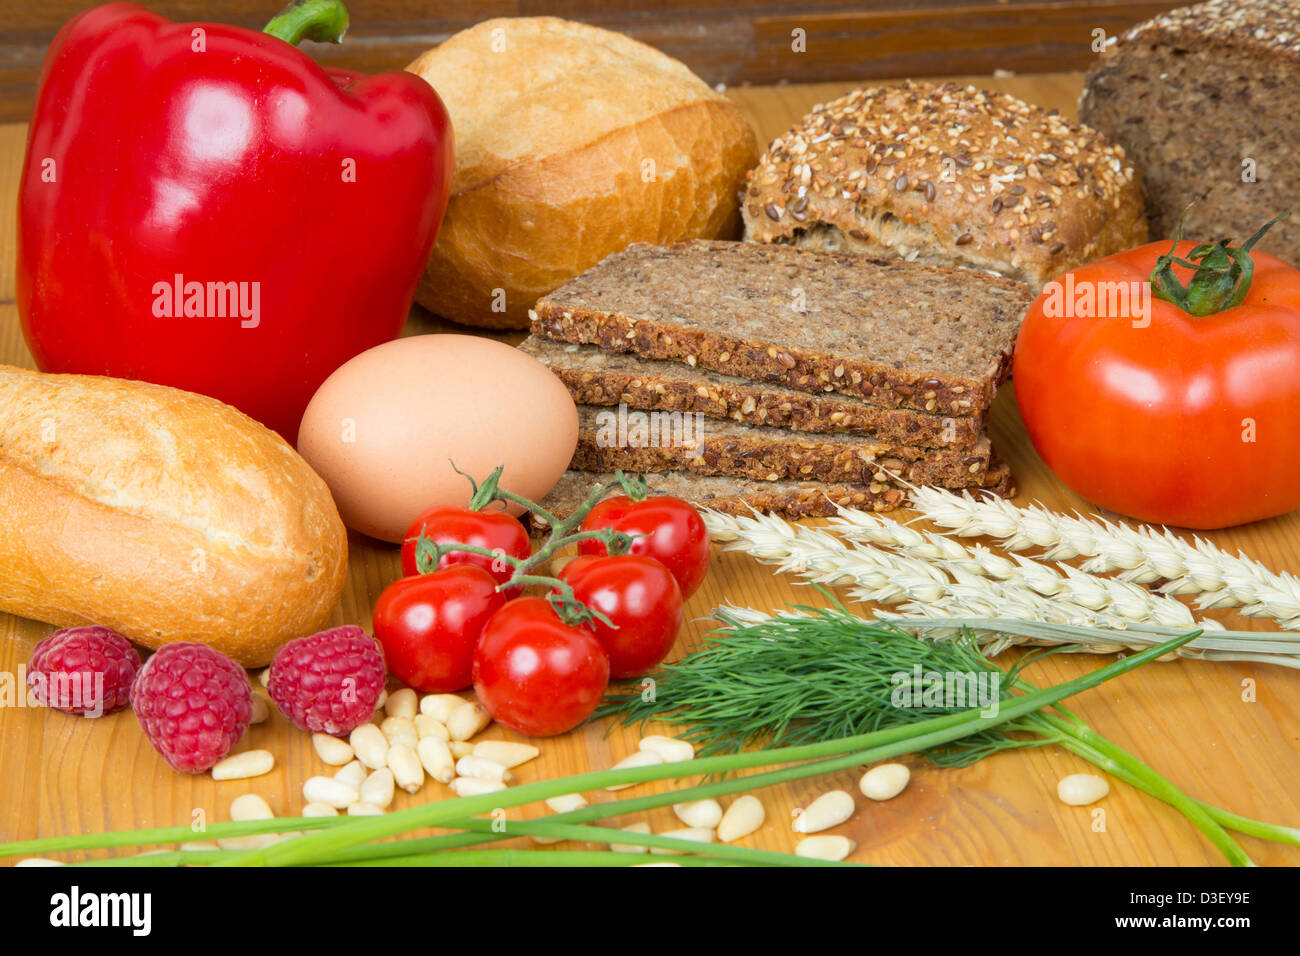 Different types of food such as bread, a tomato, apple, pine seeds, raspberry and a pretzel Stock Photo